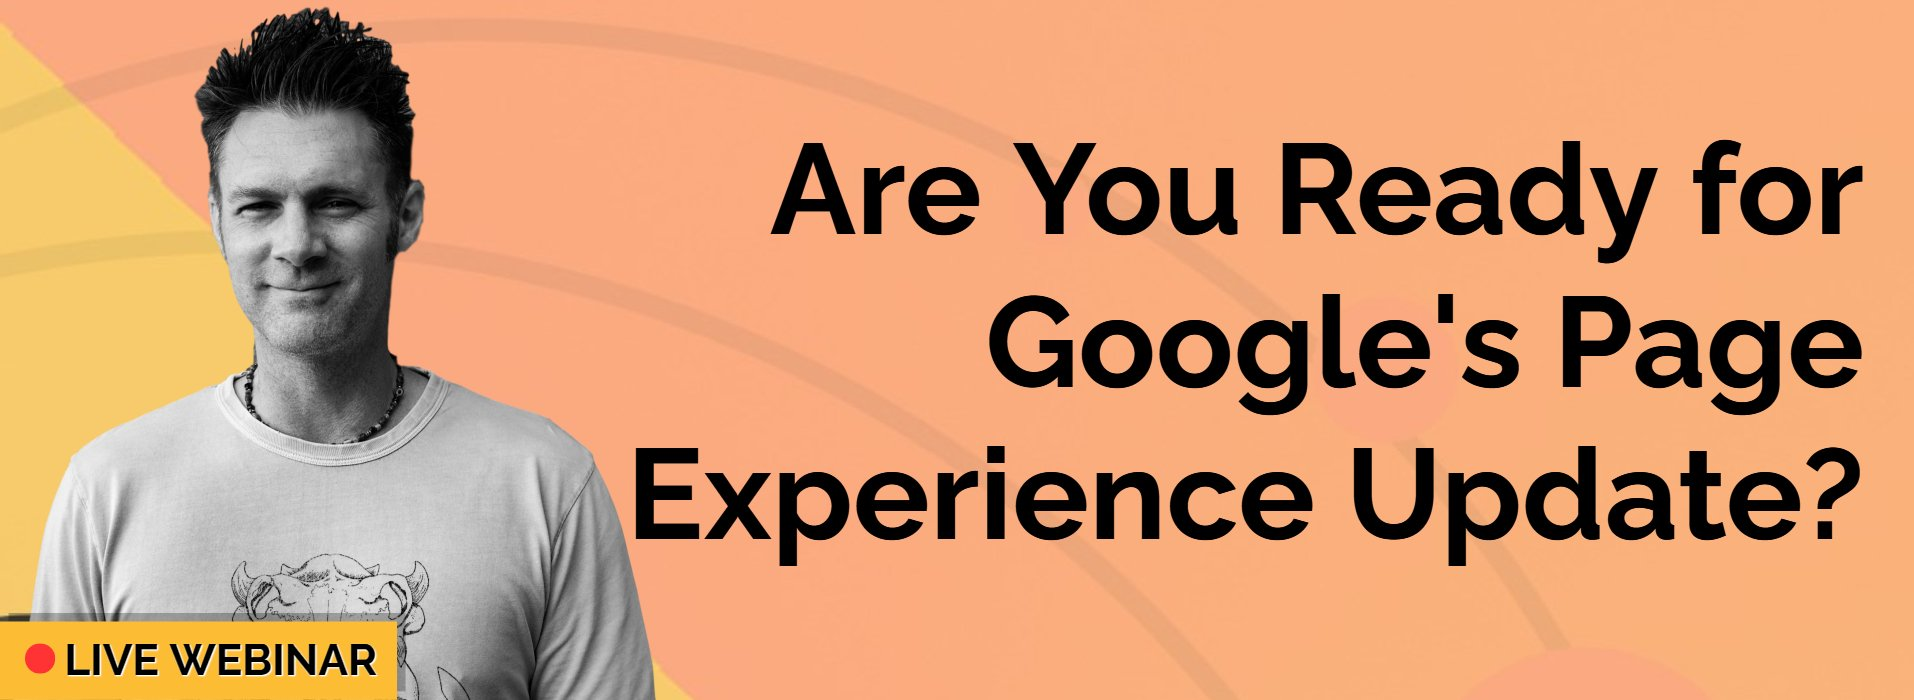 LIVE WEBINAR: Are you ready for Google's Page Experience Update? - 2pm, 25th February 2021